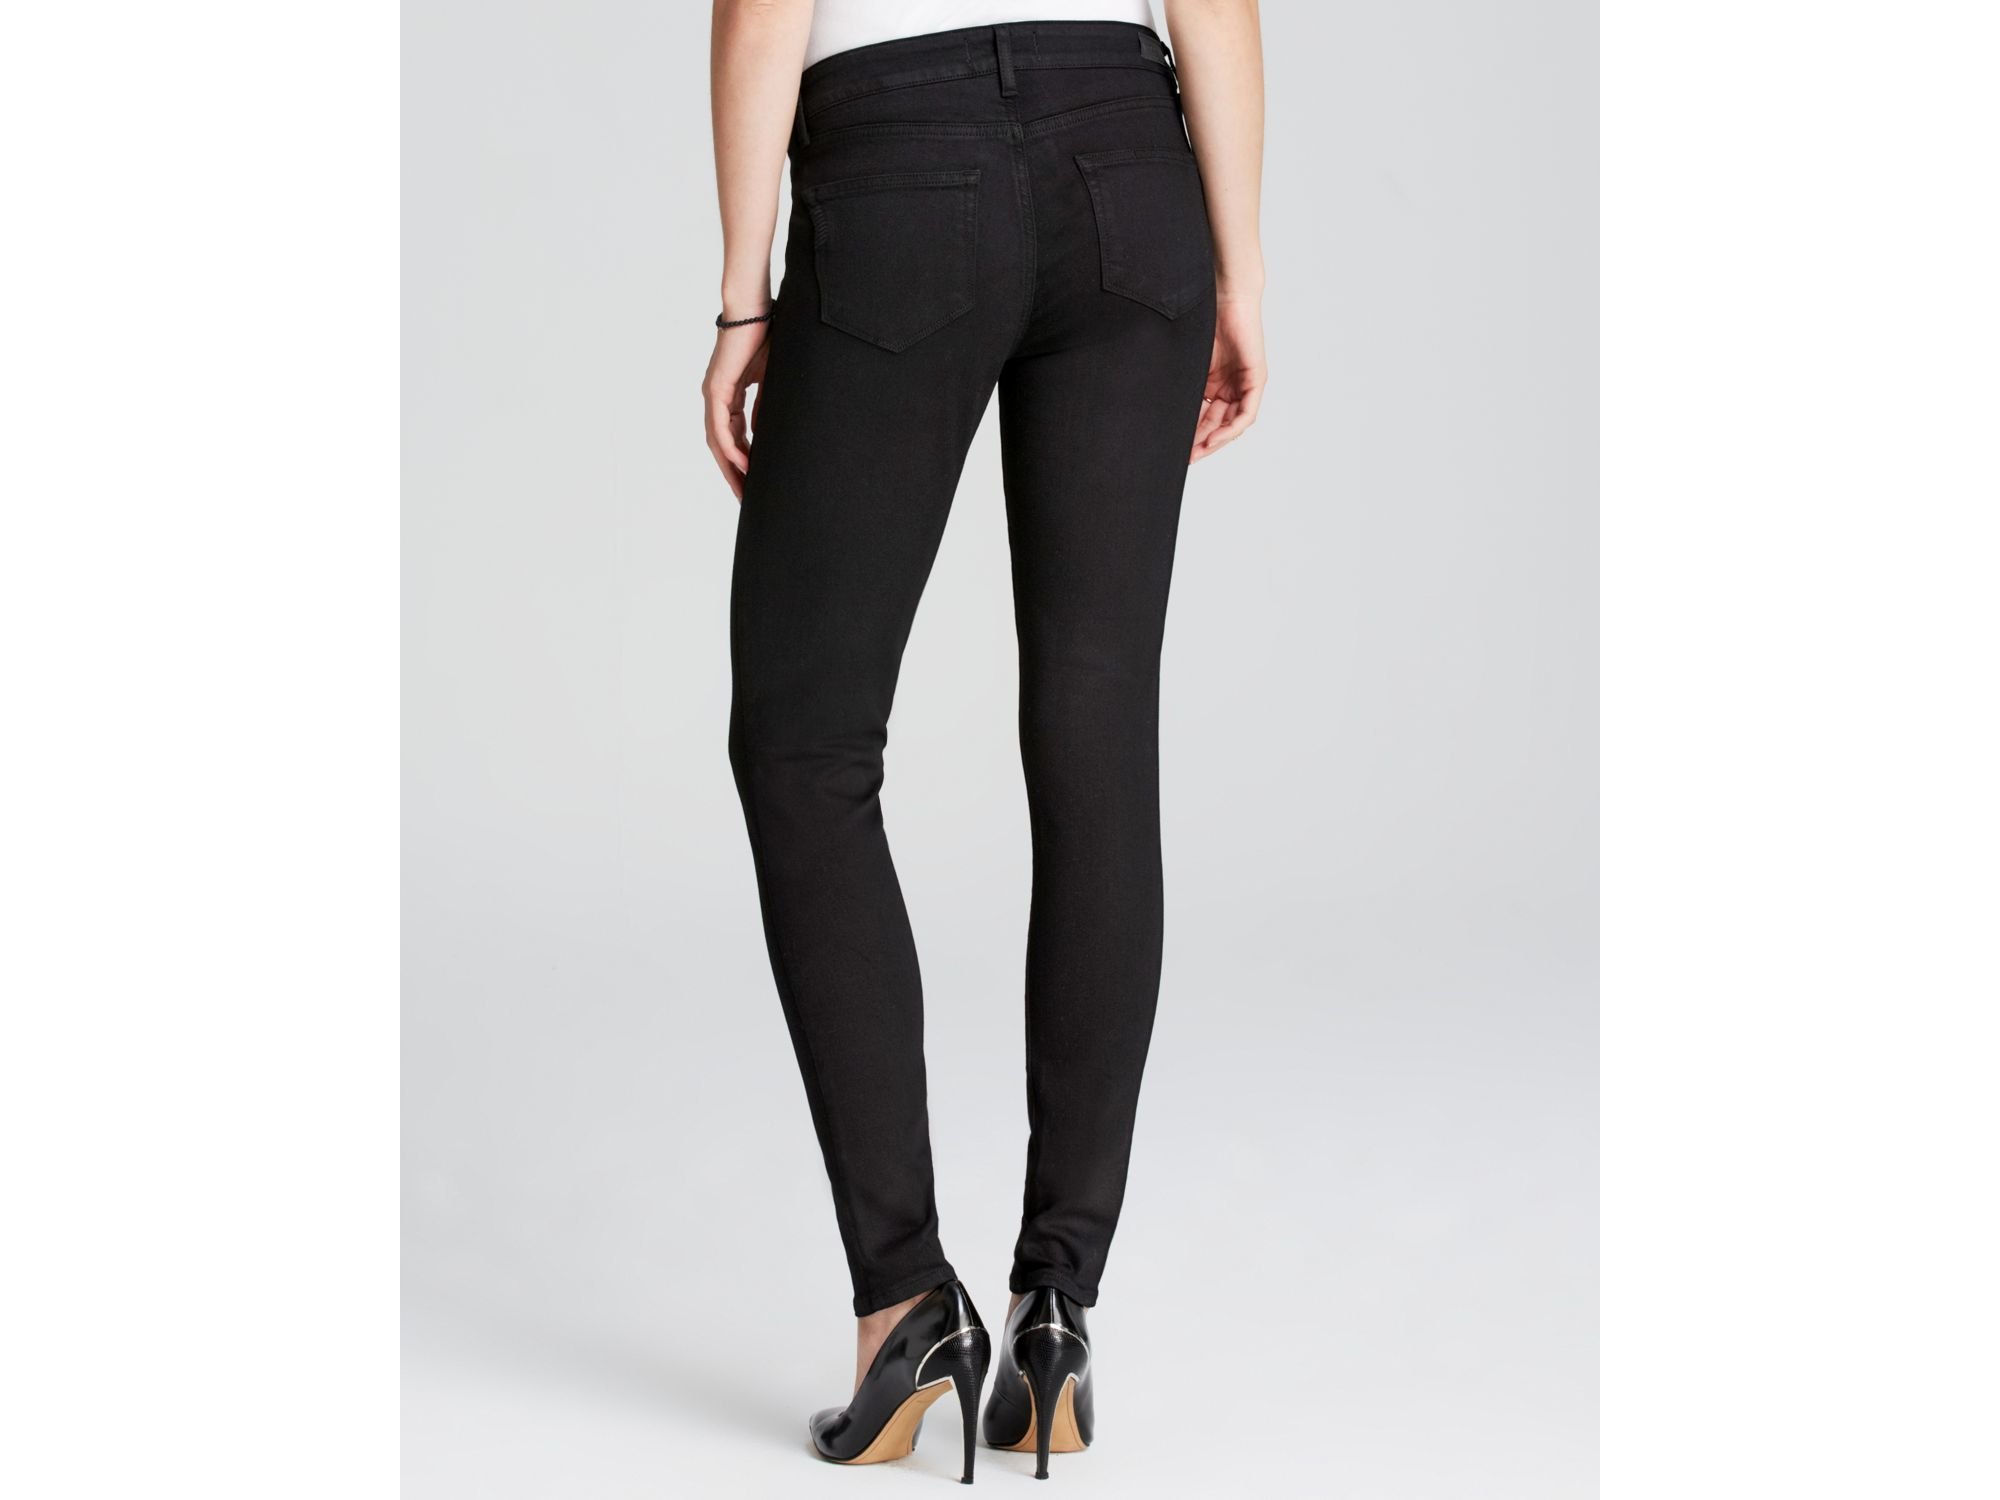 5a05c6d07c726 Gallery. Previously sold at: Bloomingdale's · Women's Maternity Jeans